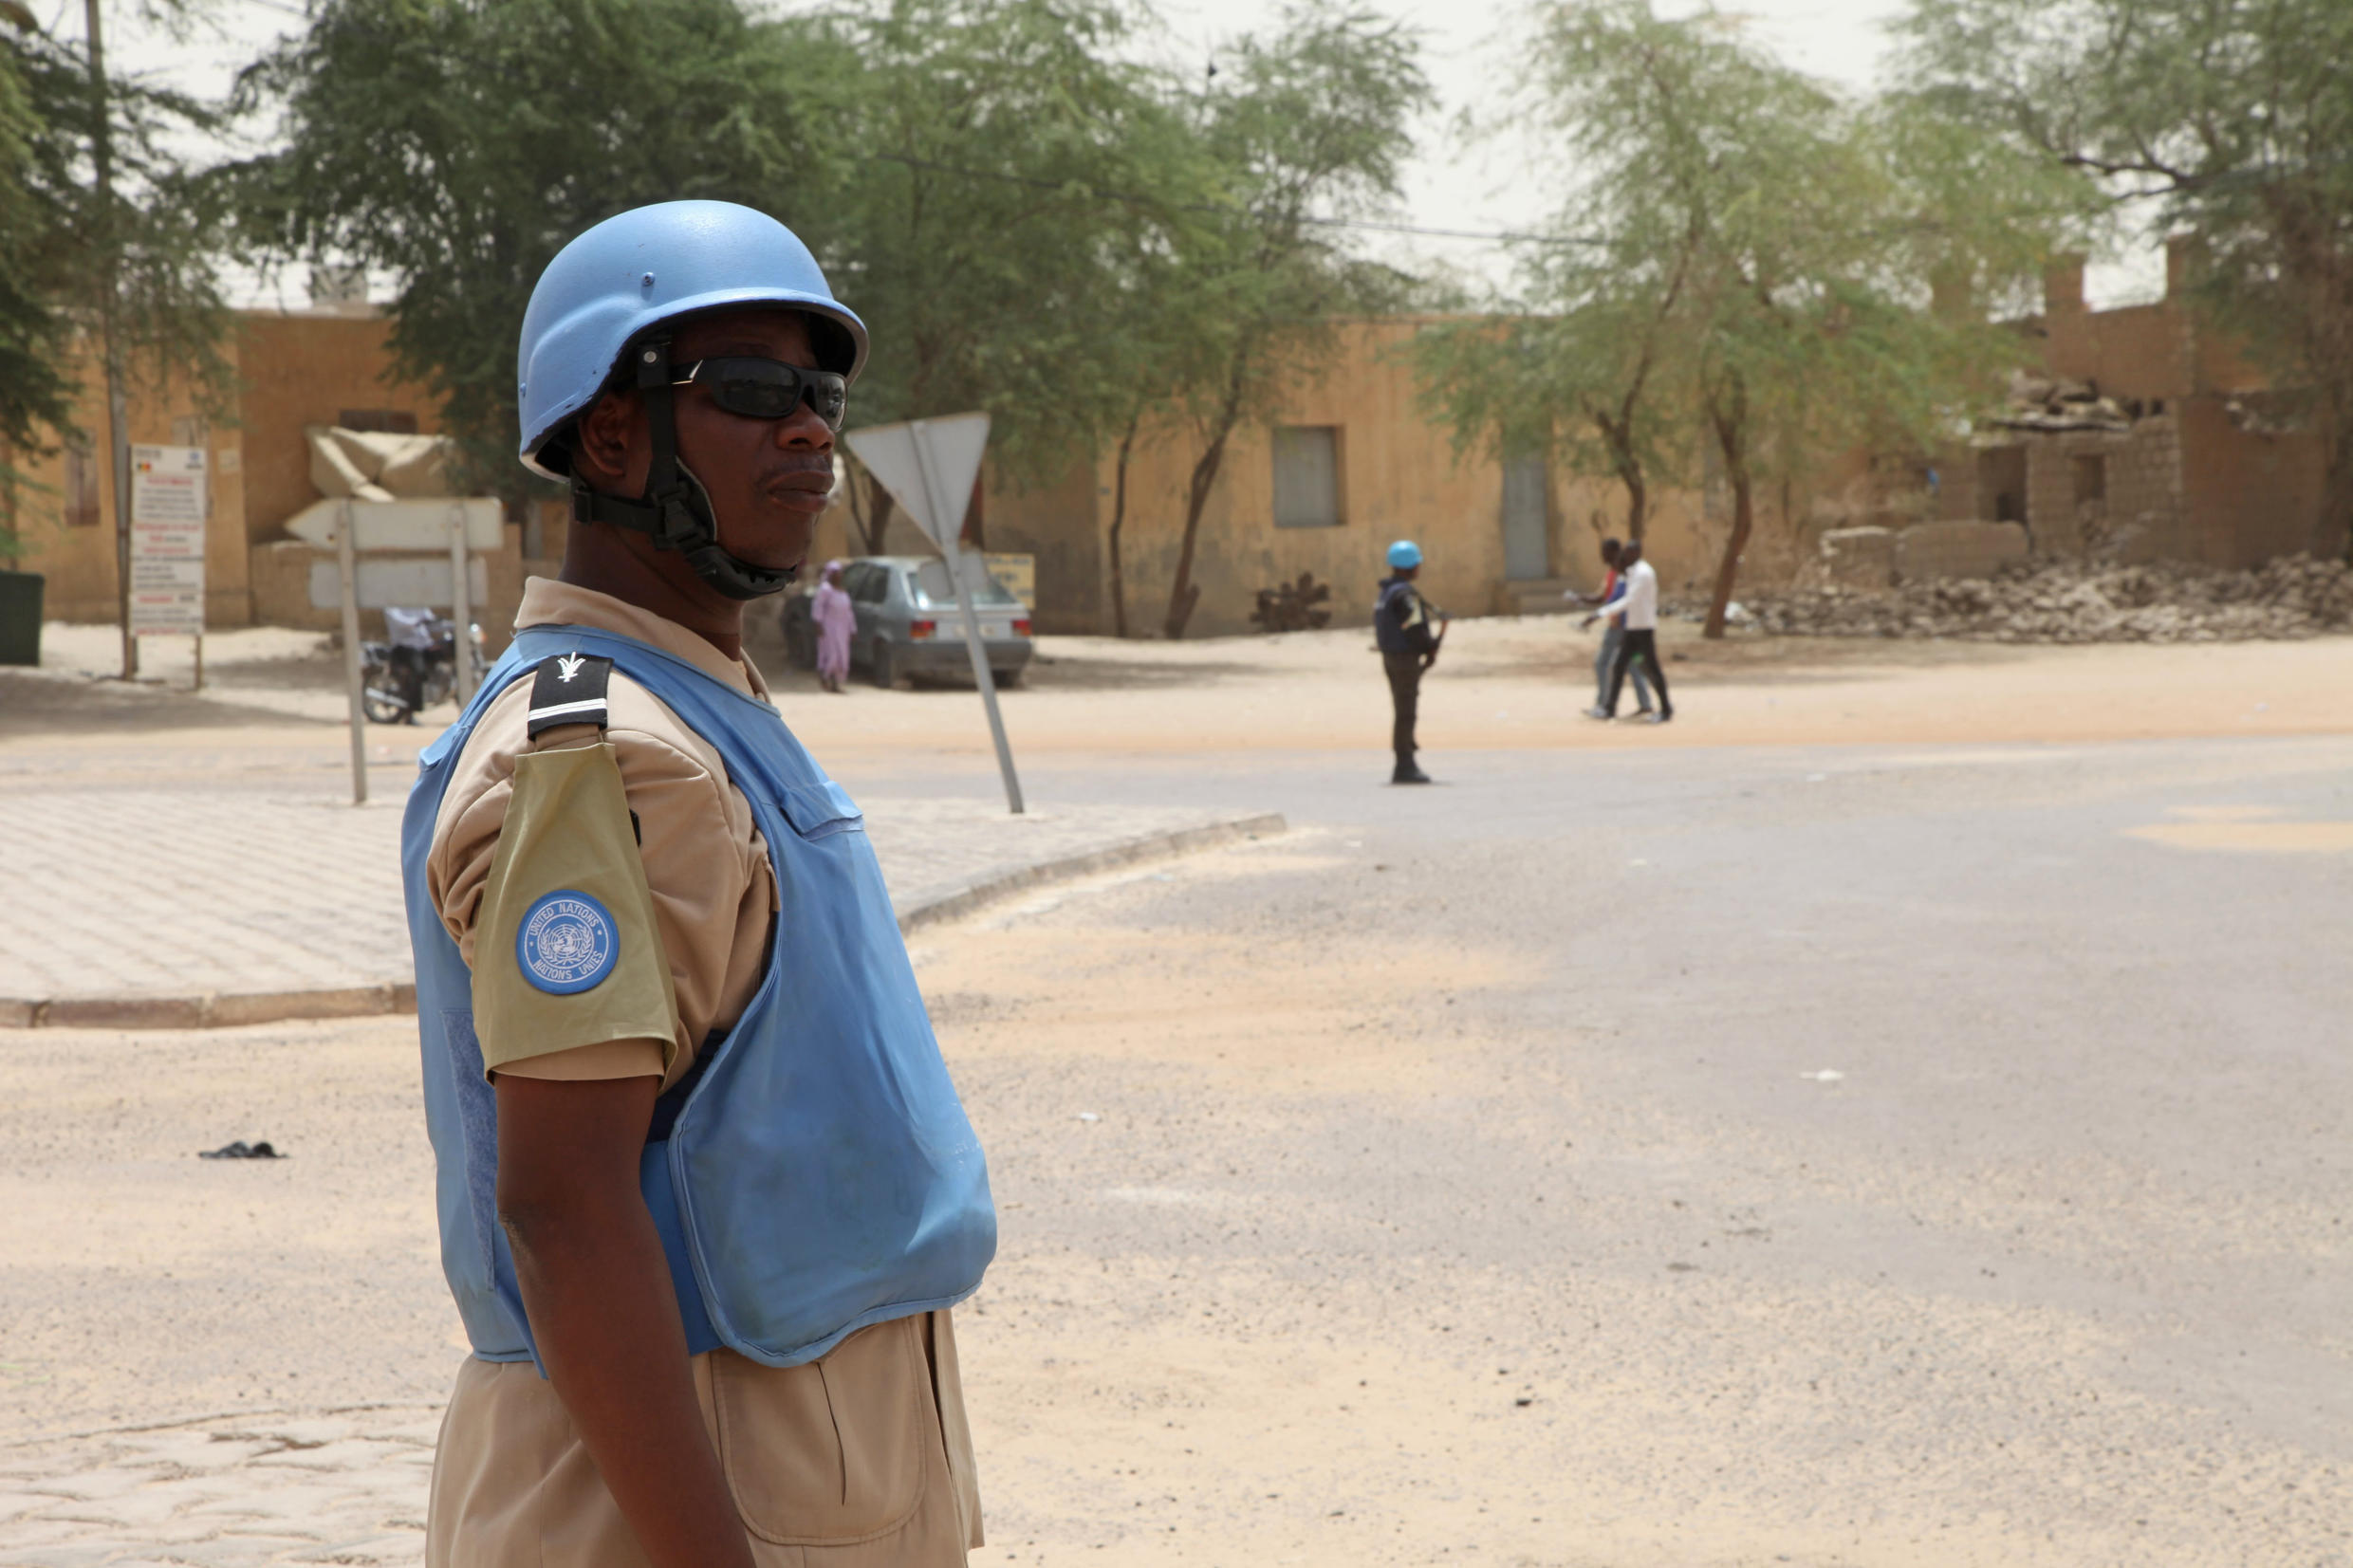 Minusma troops have also been targeted by Tuareg rebels in Timbuktu